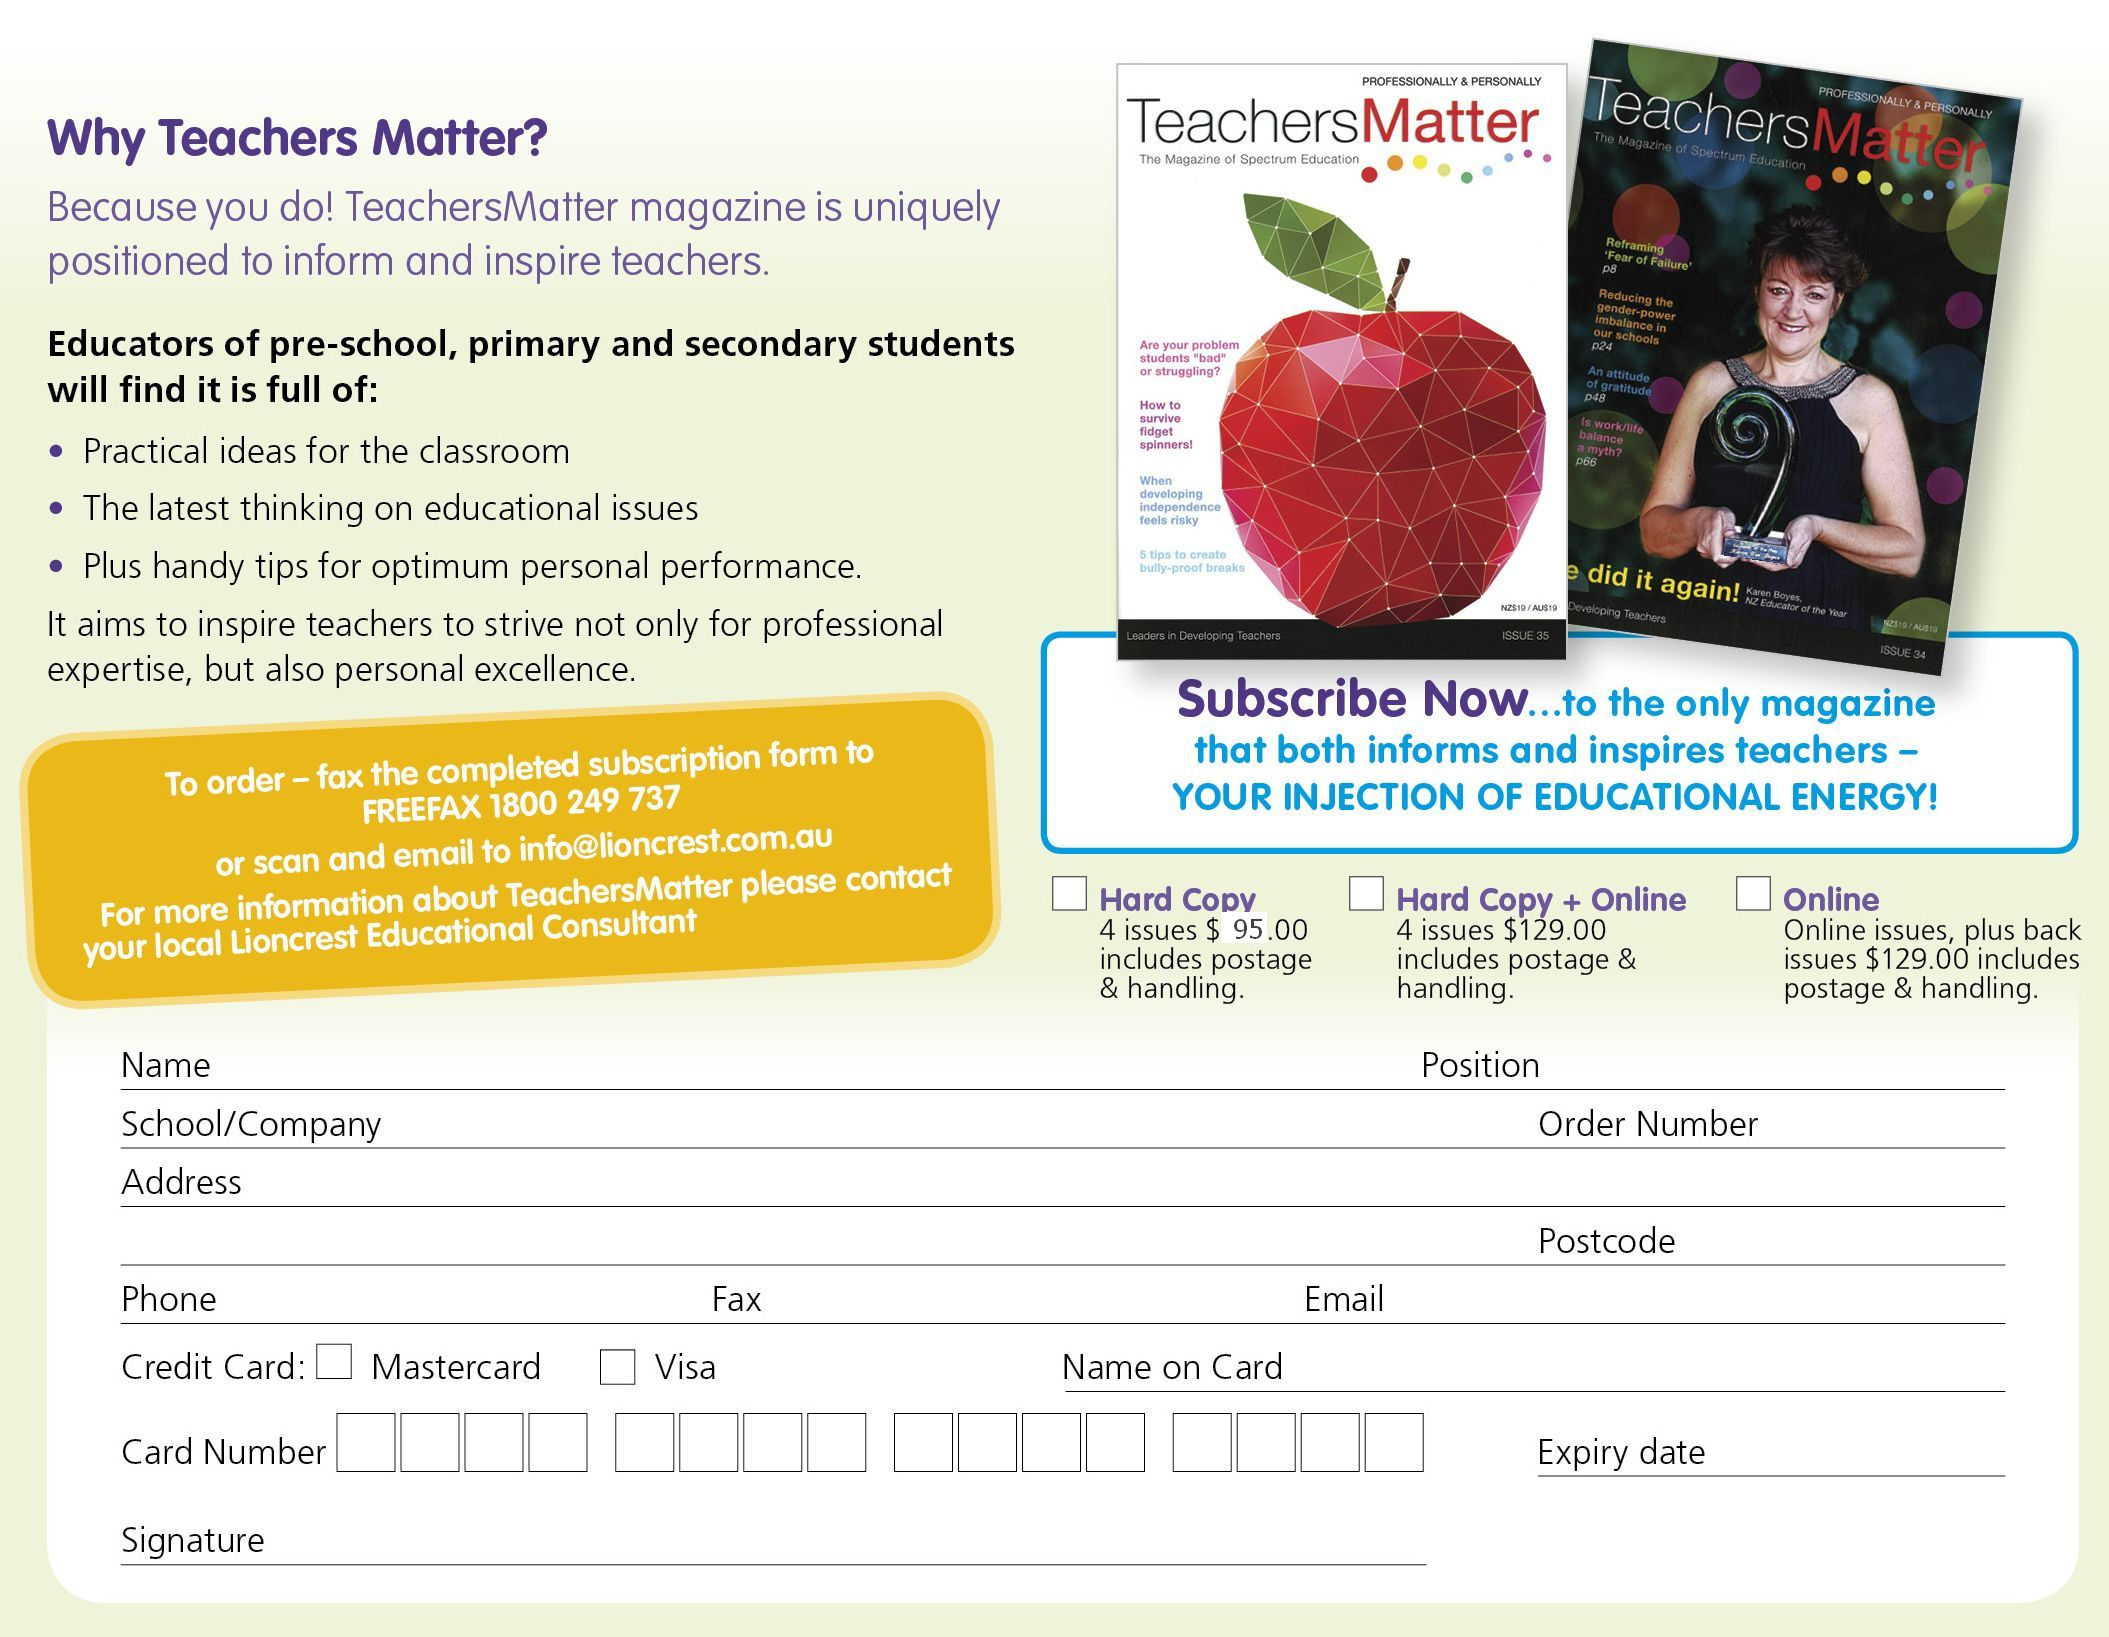 TeachersMatter 1142 2018 3